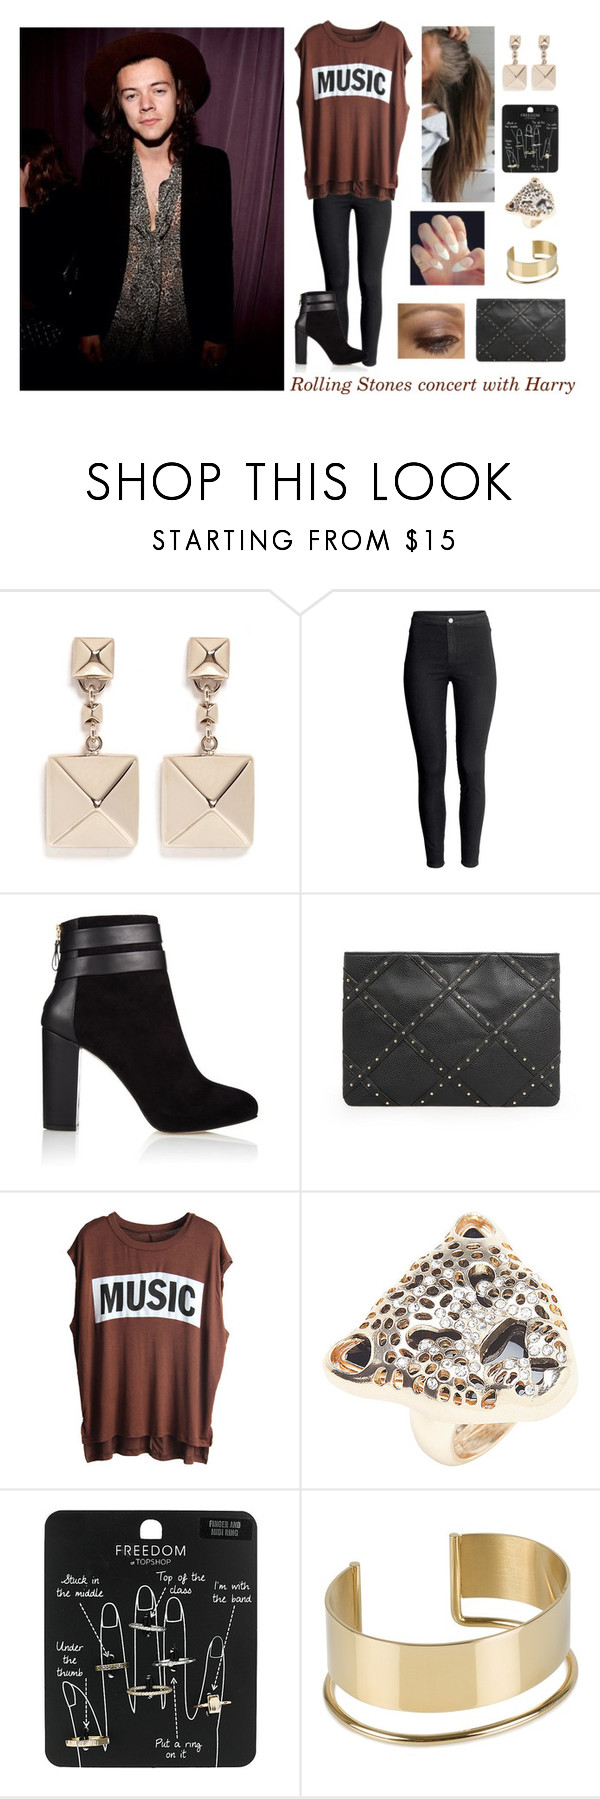 """""""Rolling Stones concert with Harry"""" by hazzabum ❤ liked on Polyvore featuring Valentino, H&M, Coye Nokes, MANGO, Lane Bryant, Topshop, By Malene Birger and harrystyles"""